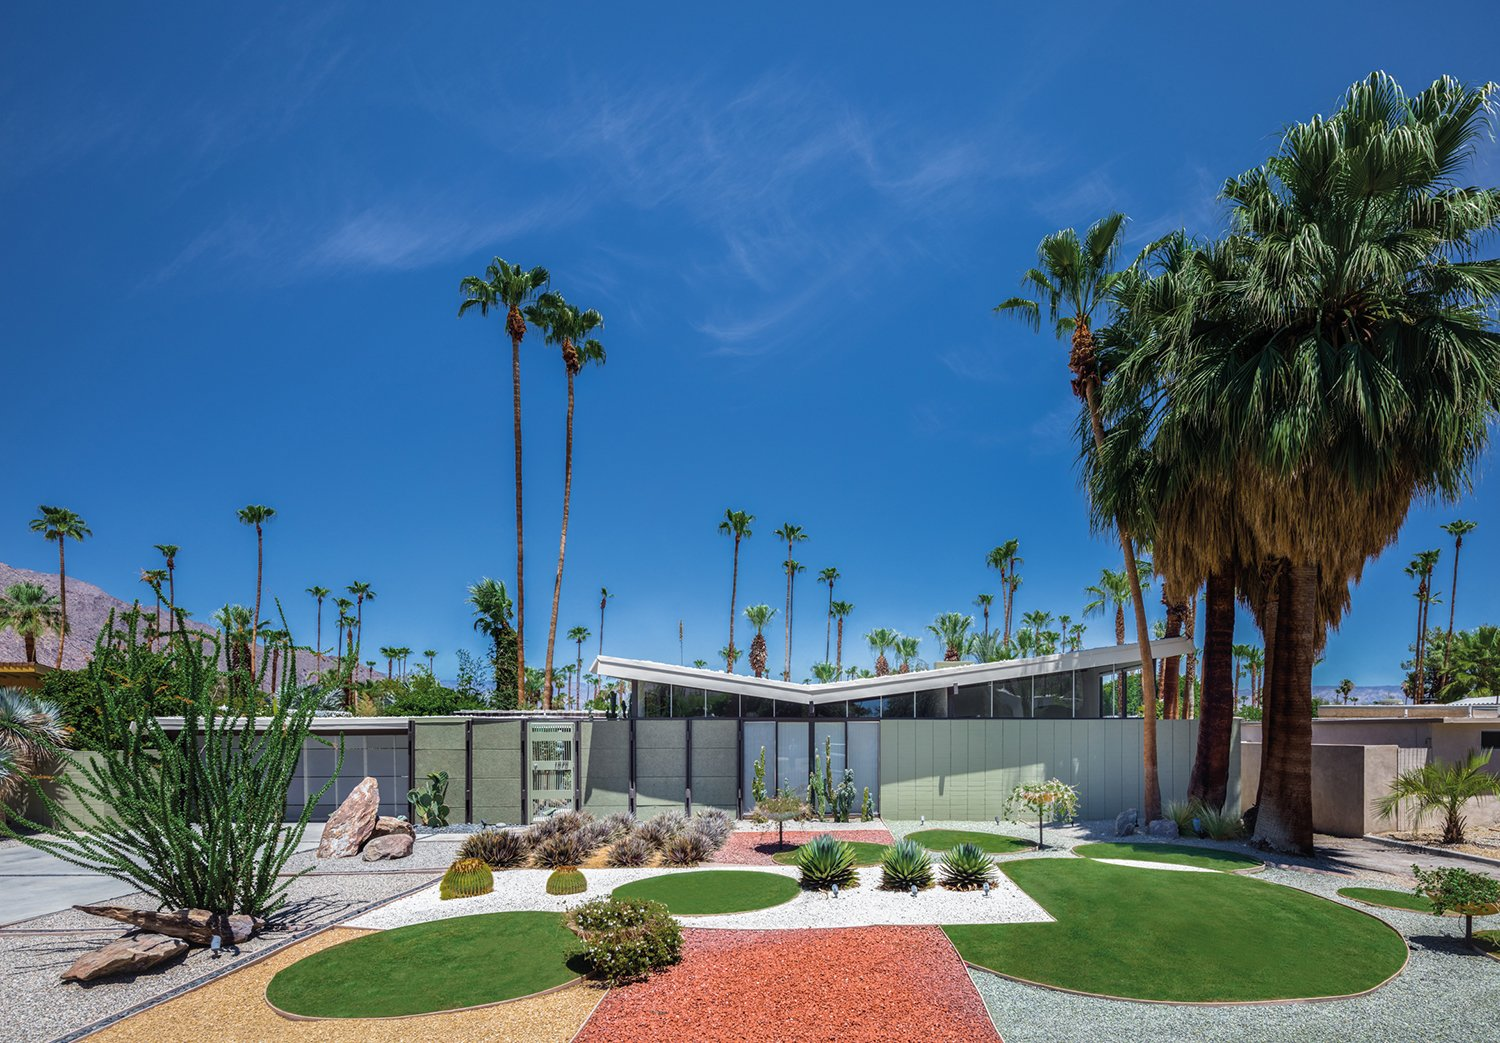 Krisel was also known for his boldly modern approach to landscape. The Menrad residence, shown here, features a distinct geometric design. The architect, working in the harsh Palm Springs climate, relied on hardscape elements—setting a precedent for drought-tolerant landscape design. Tagged: Exterior, Mid-Century Building Type, House, and Butterfly RoofLine.  A Crash Course in Palm Springs Architecture by Matthew Keeshin from Midcentury Lovers: You Can Thank This Architect for Transforming Palm Springs Into a Modernist Hotbed